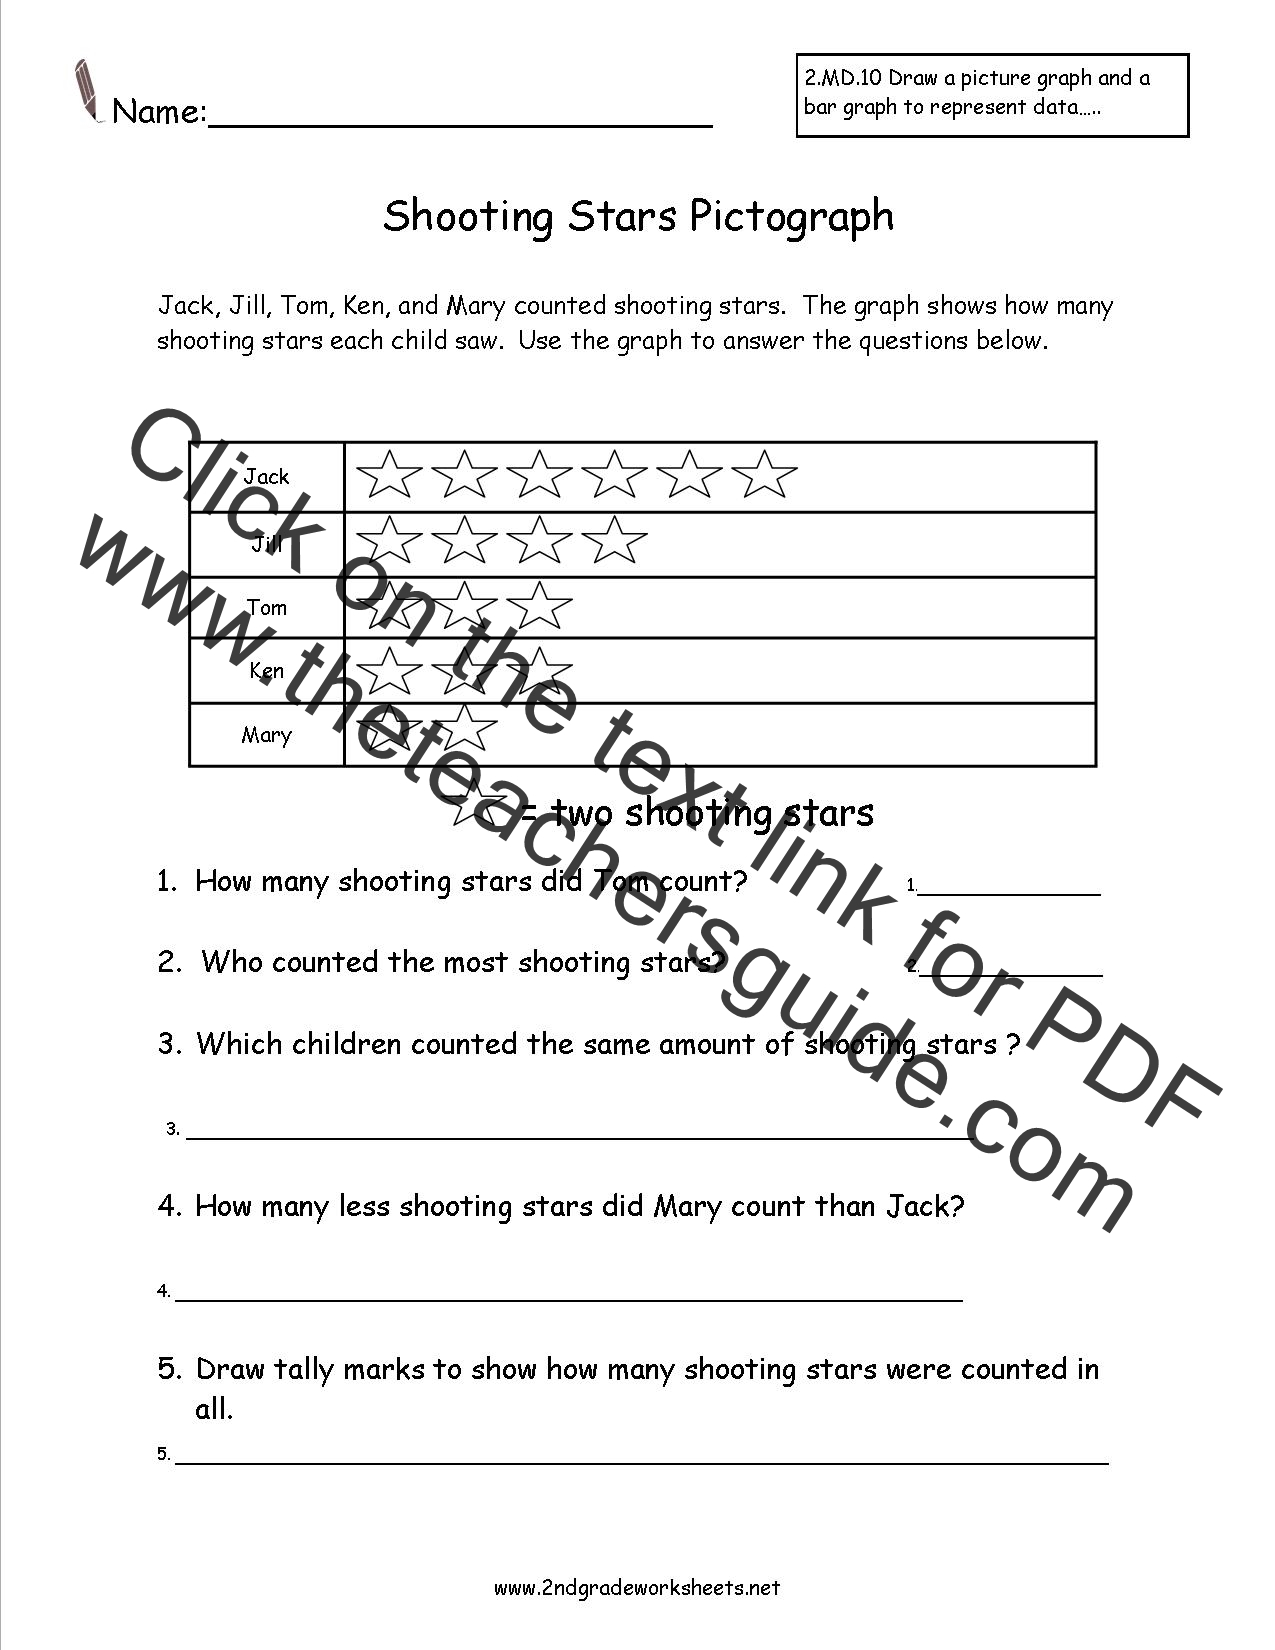 Worksheets Free Printable Reading Worksheets For 3rd Grade second grade reading and creating pictograph worksheets shooting stars worksheet